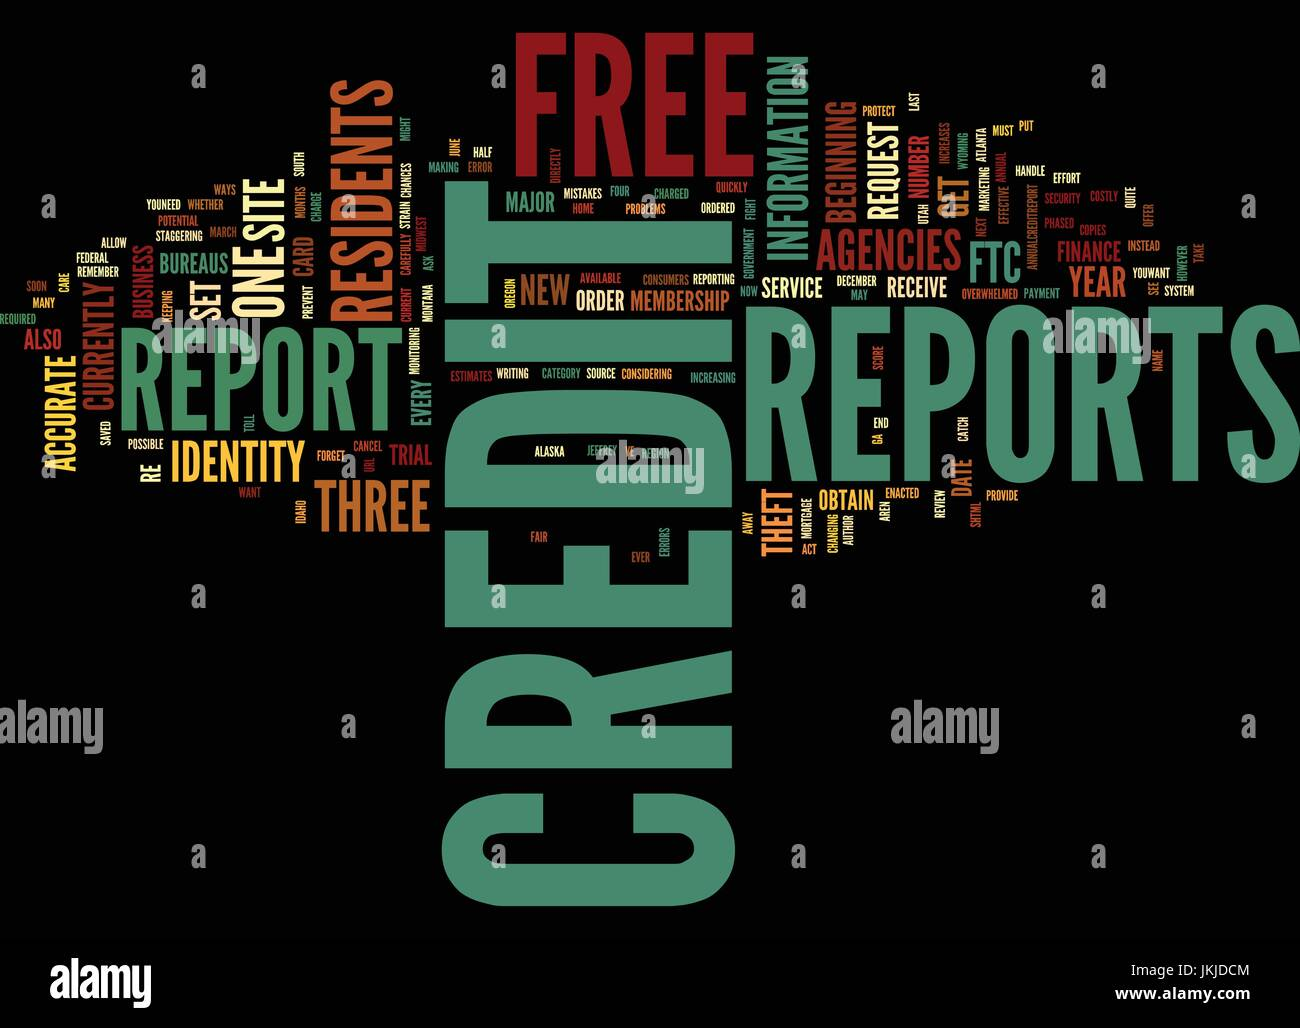 free background and credit report